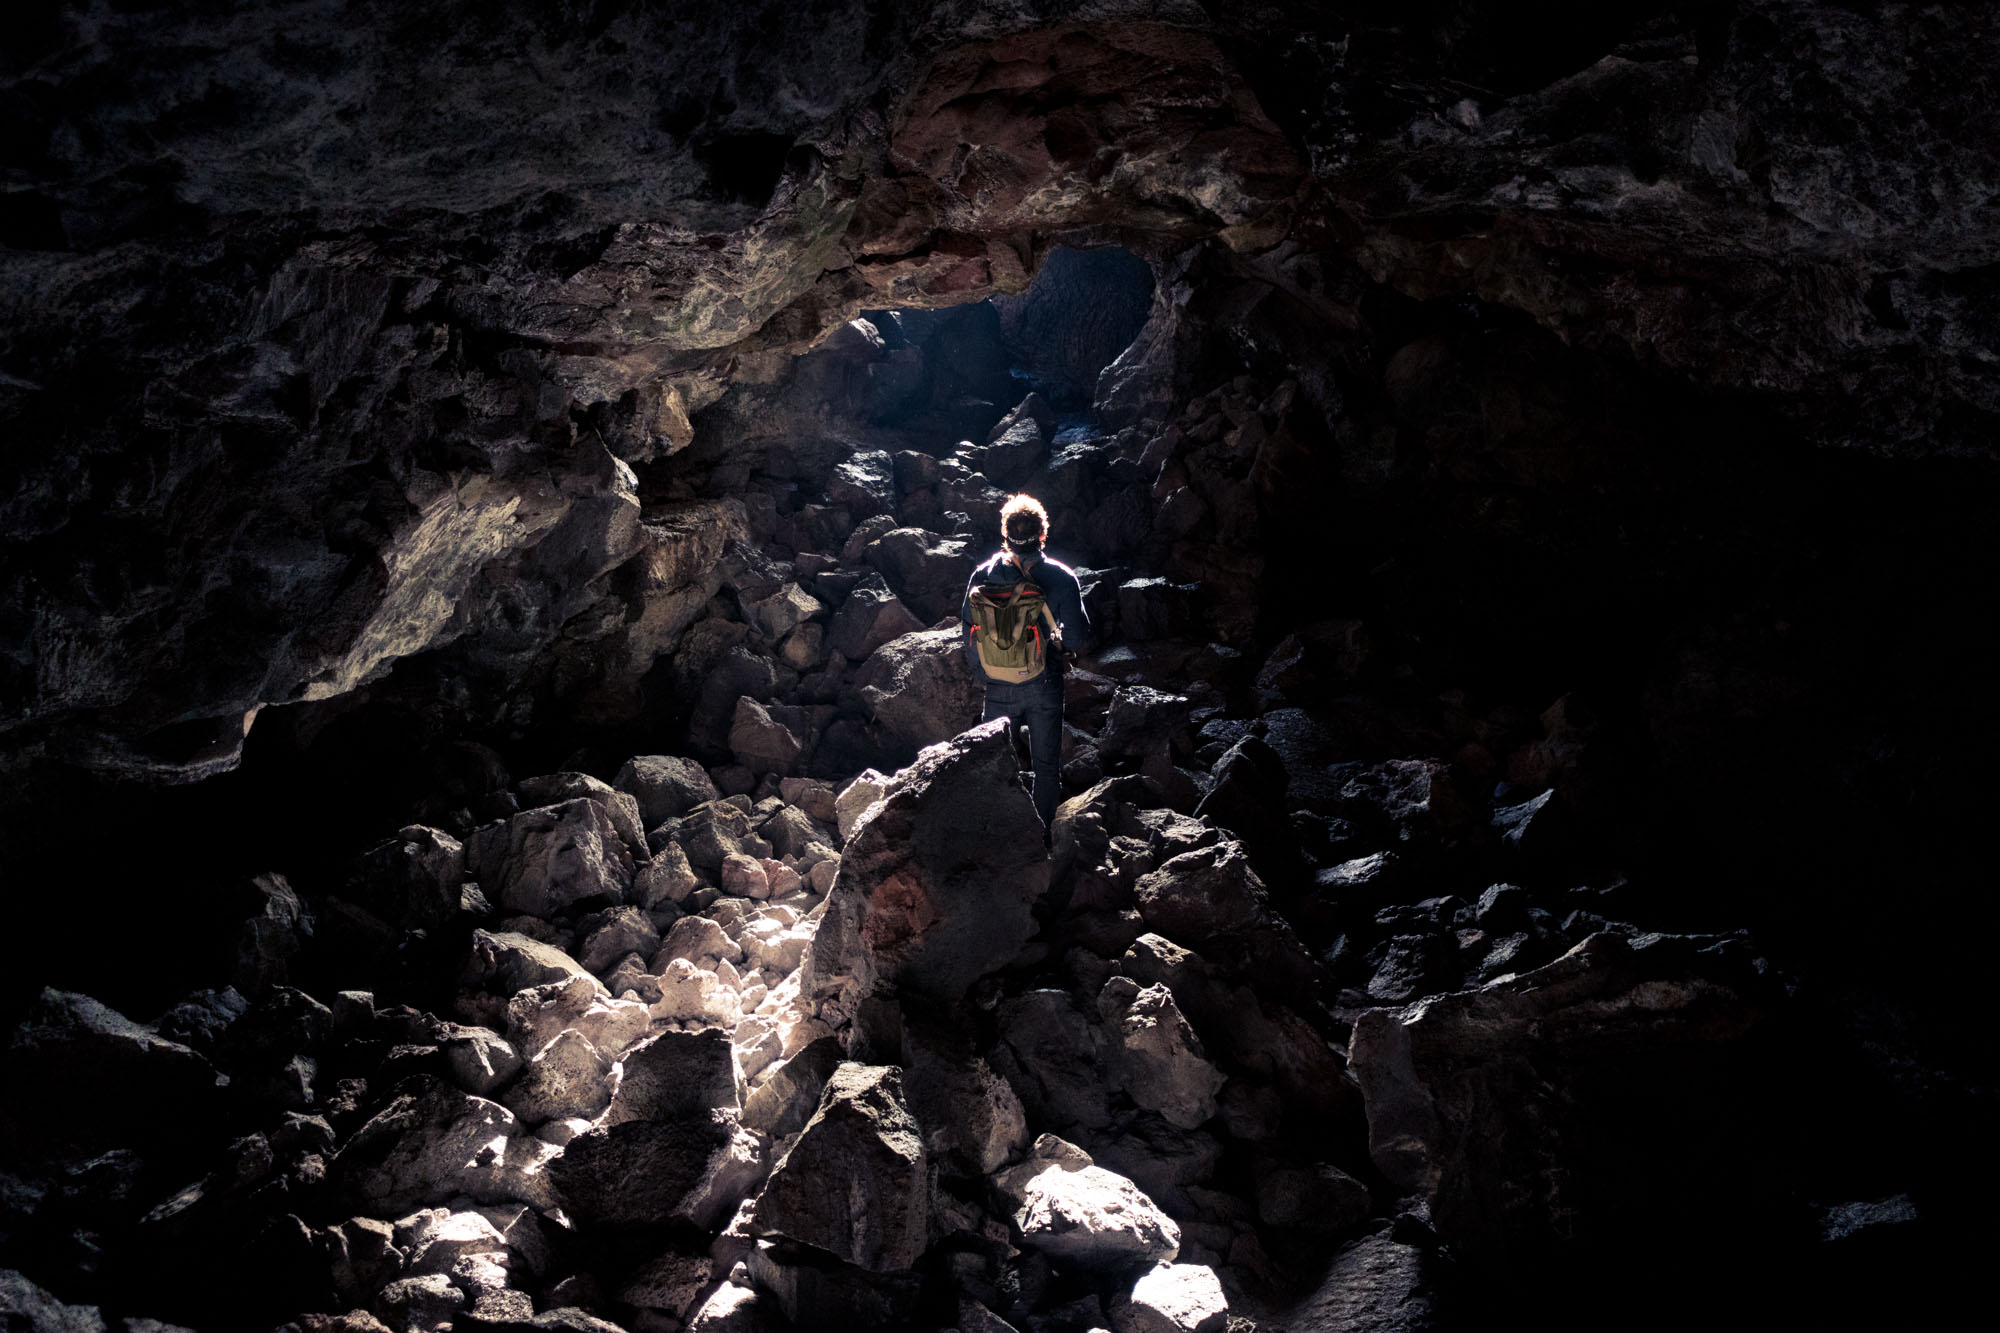 Owen in Indian Cave, Craters of the Moon National Monument